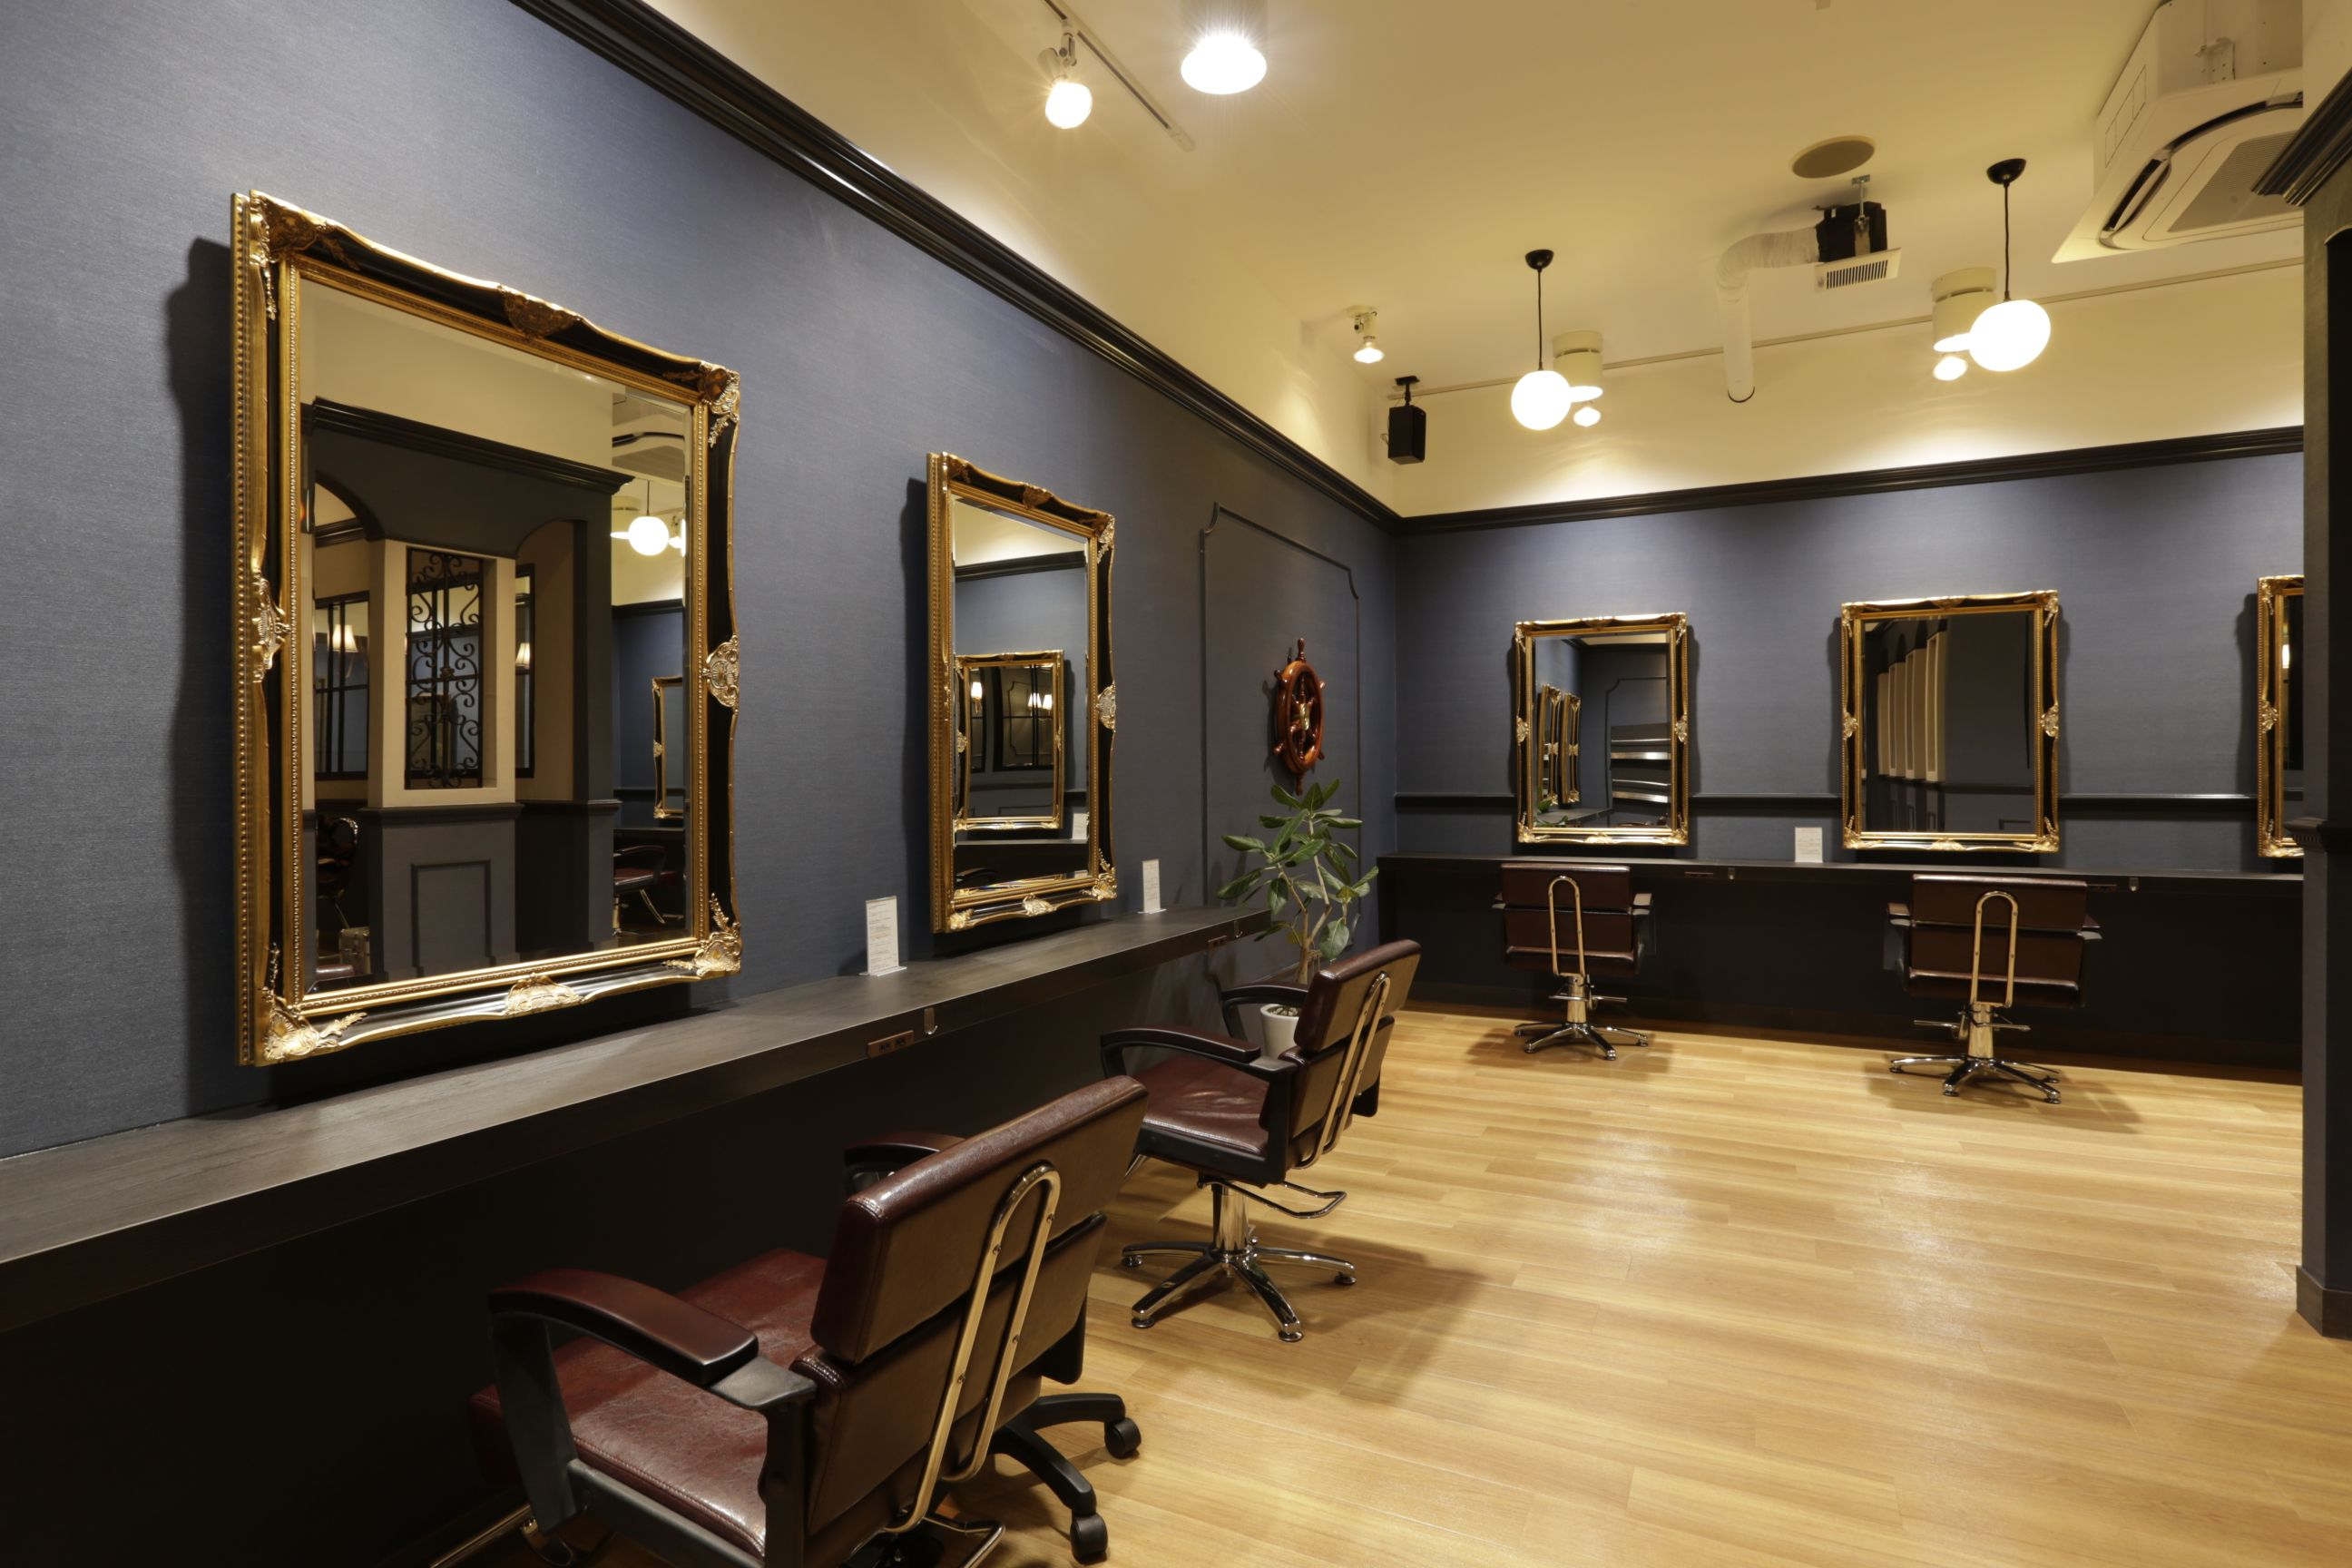 Pin By Stacey Glass On Salon Ideas